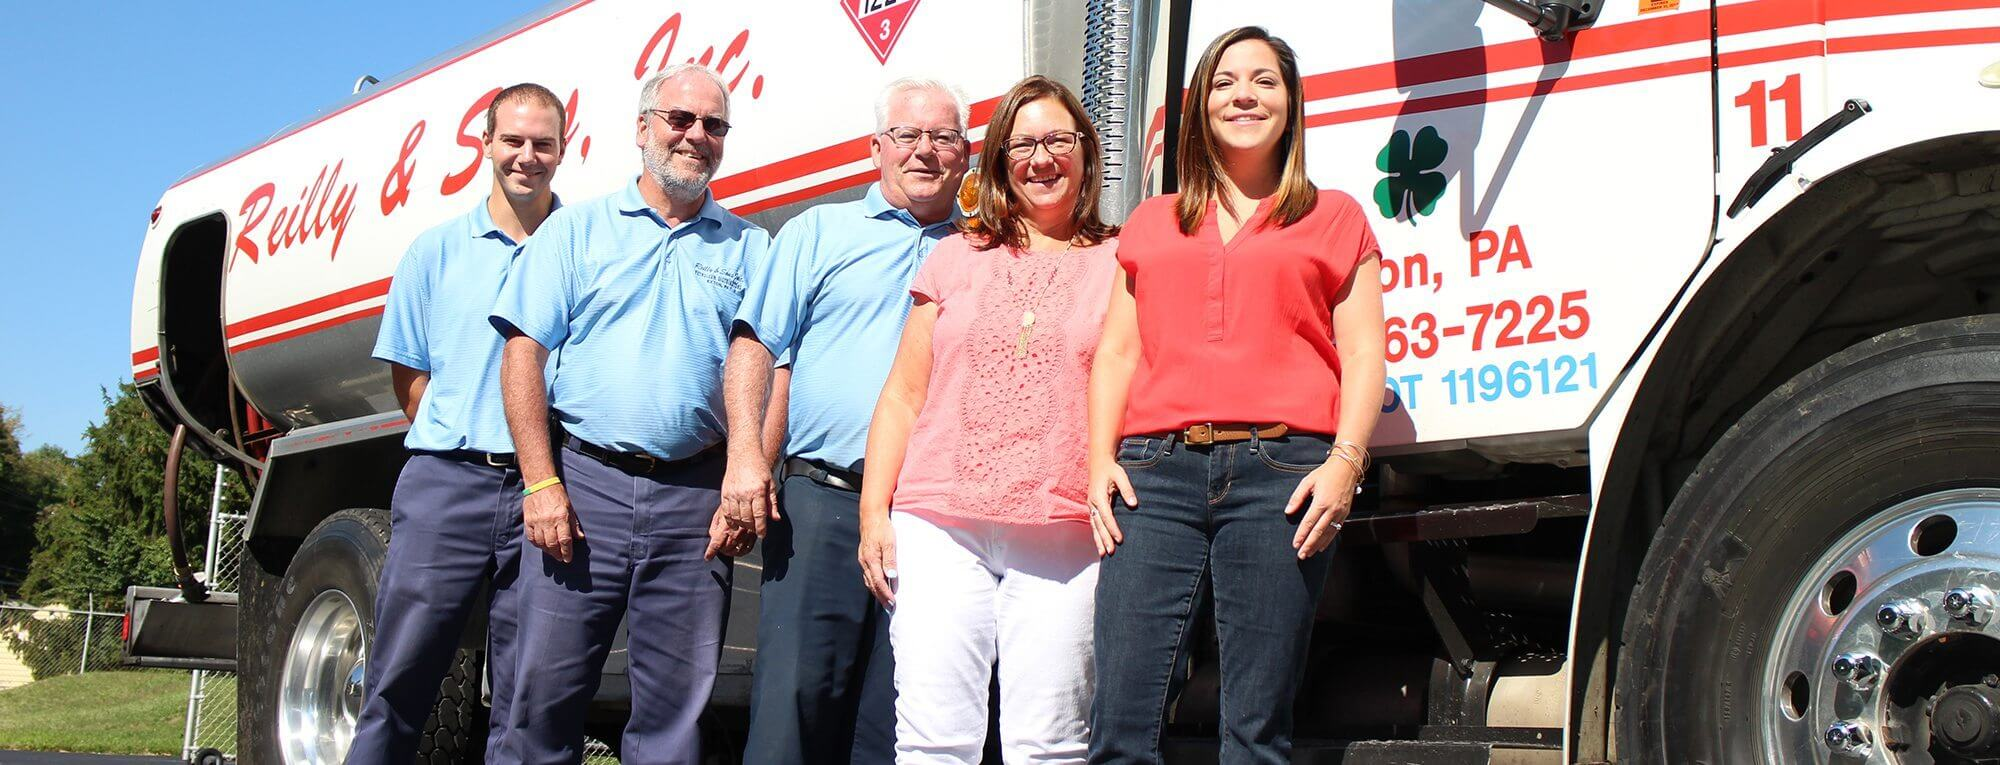 Reilly and Sons team standing in front of one of the trucks.